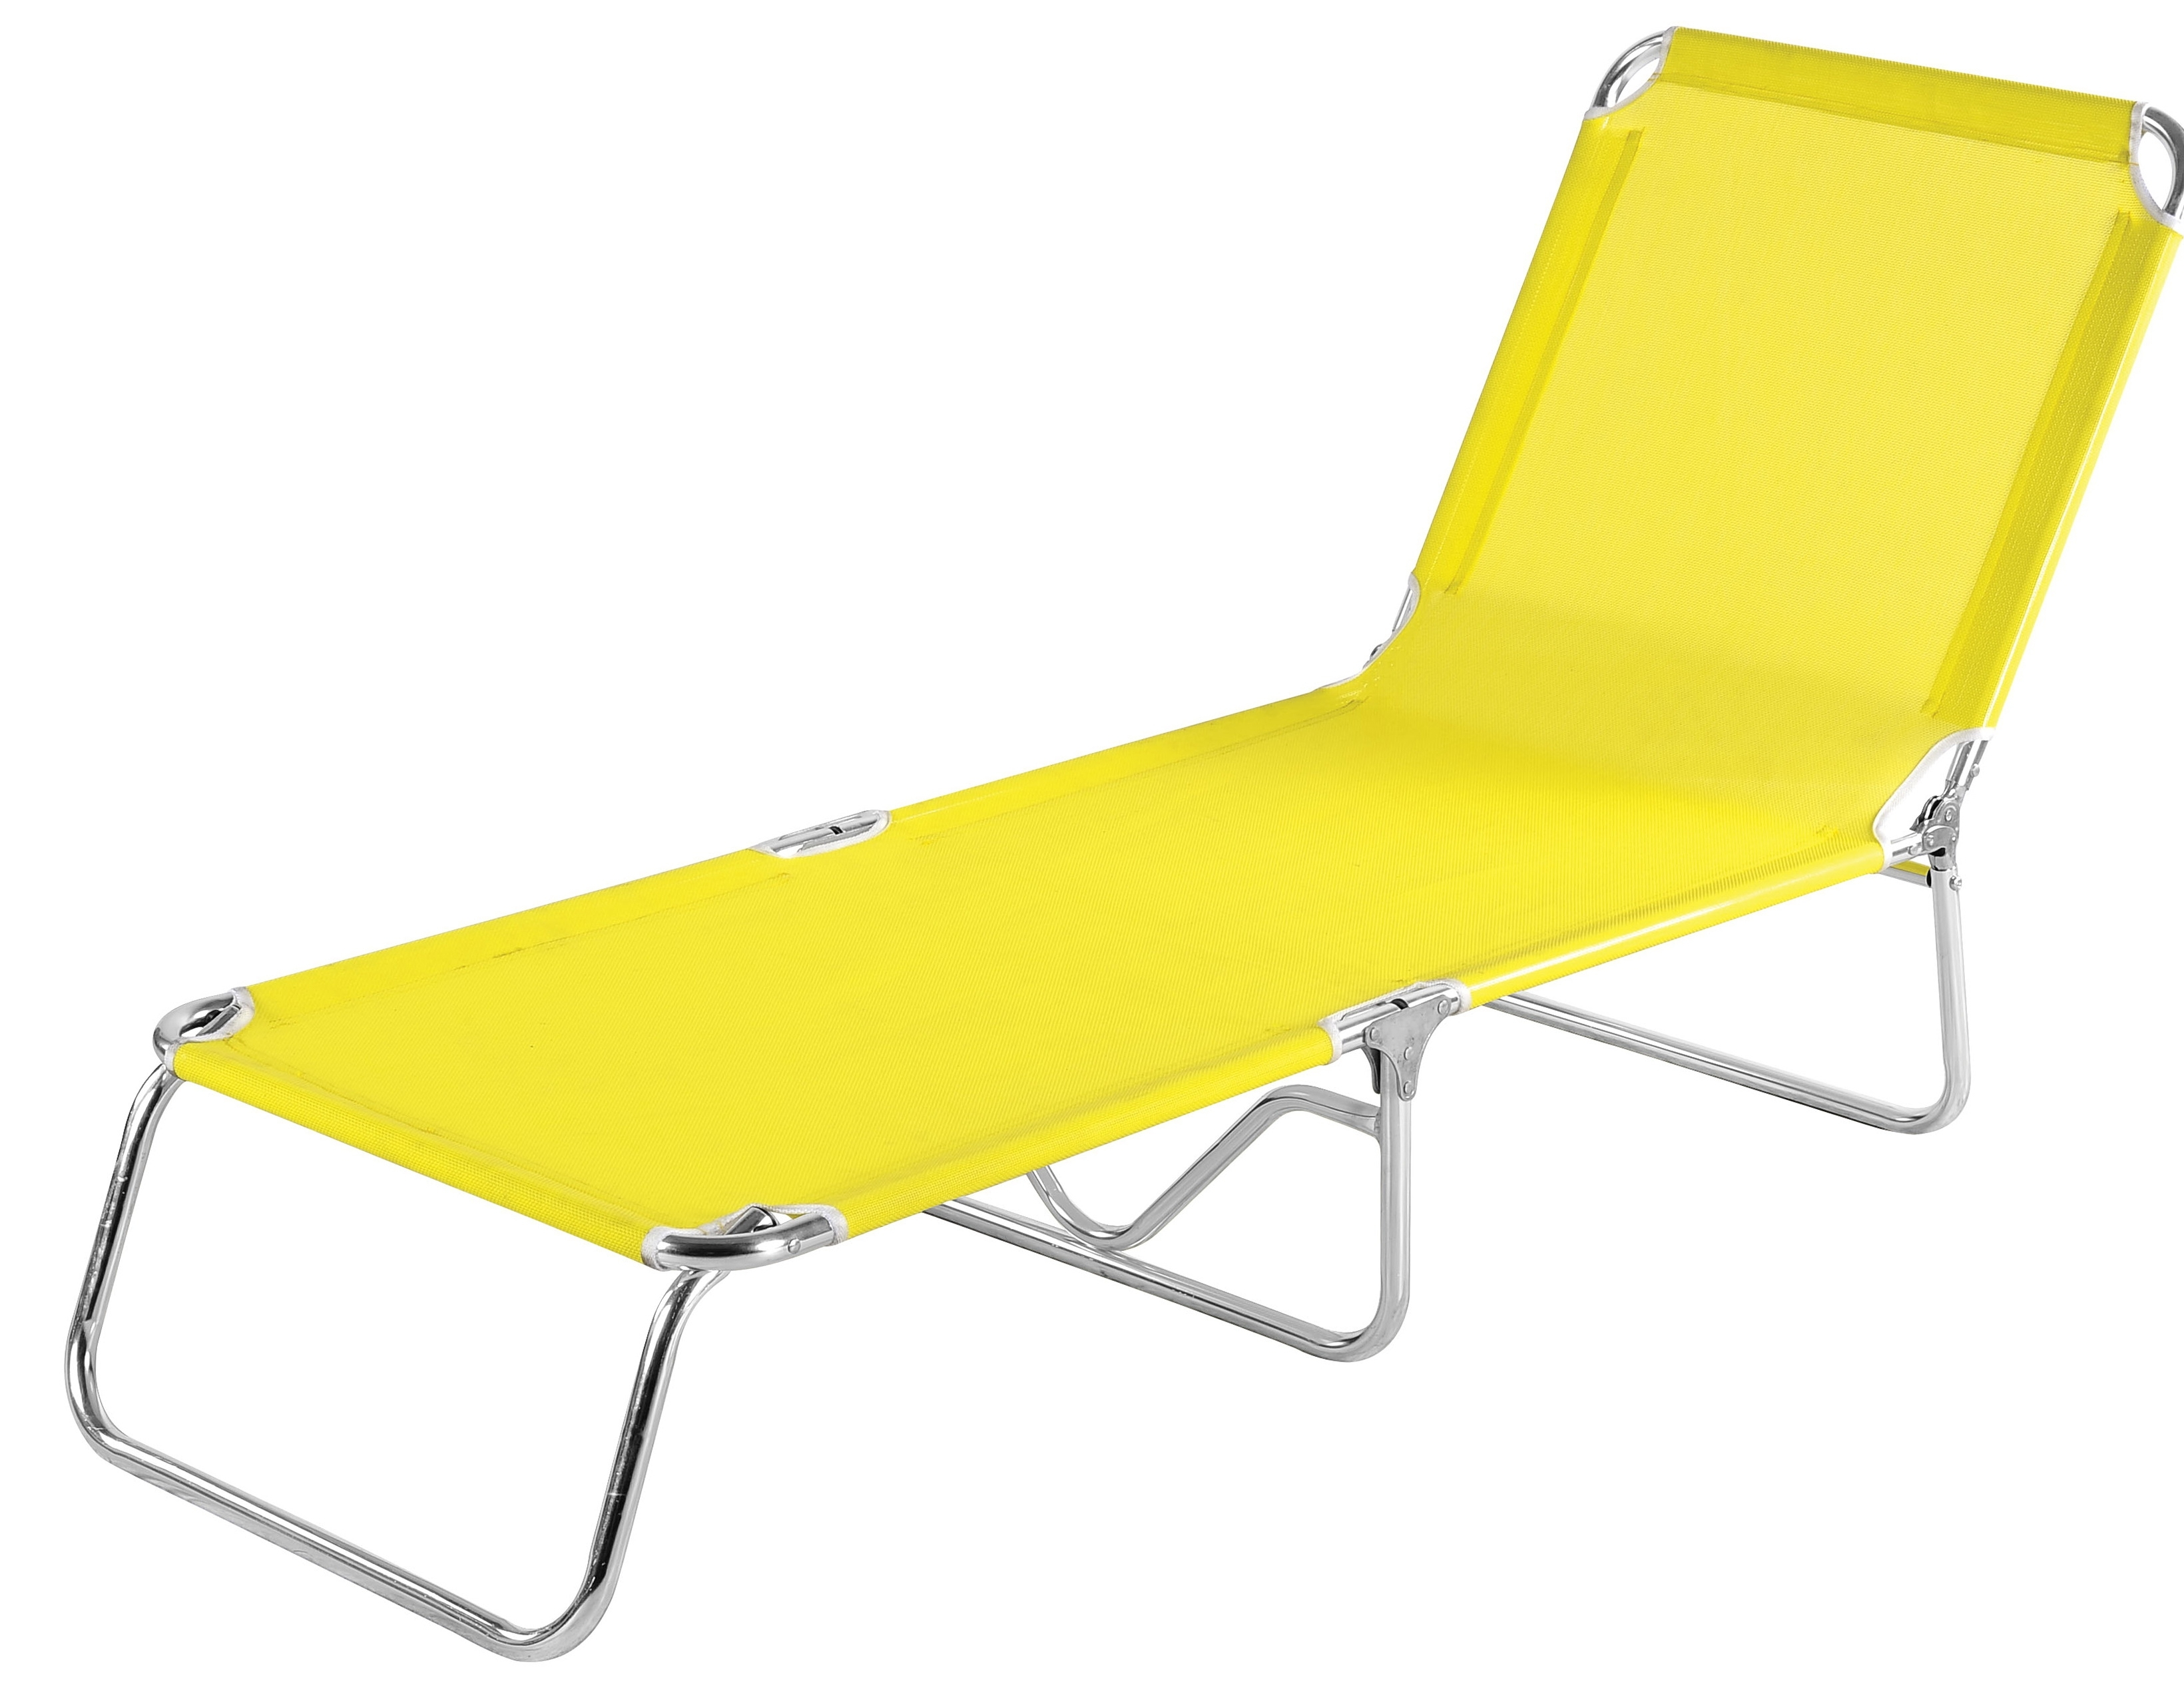 2018 Plastic Folding Chaise Lounge Chair • Lounge Chairs Ideas Inside Pvc Chaise Lounges (View 1 of 15)